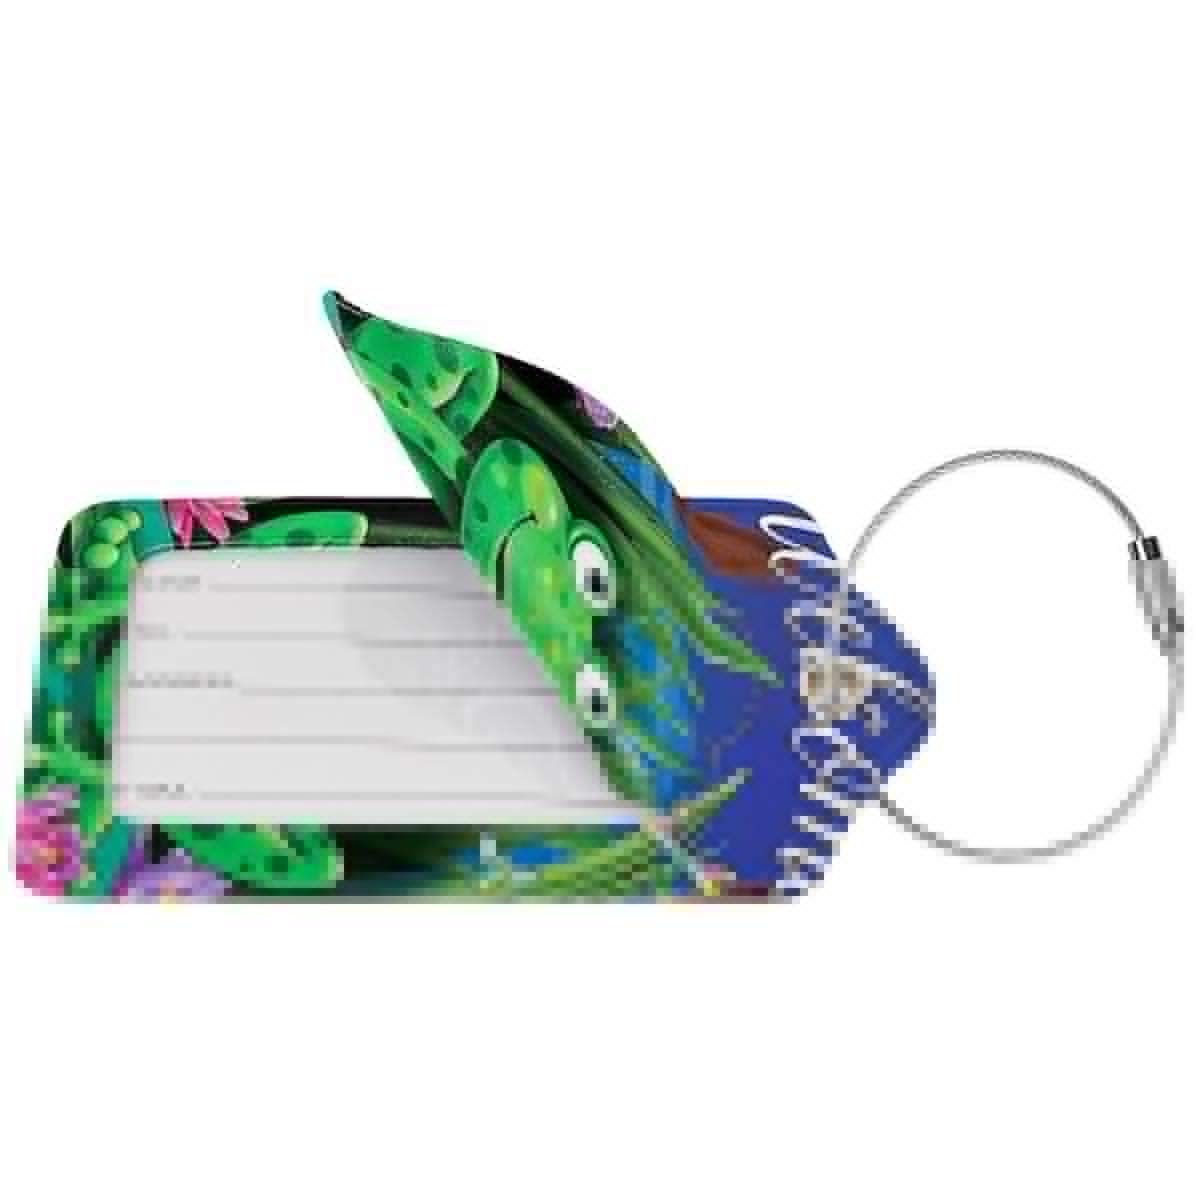 Night Green Frog Welcome Leather Luggage Tags Personalized Extra Address Cards With Privacy Flap